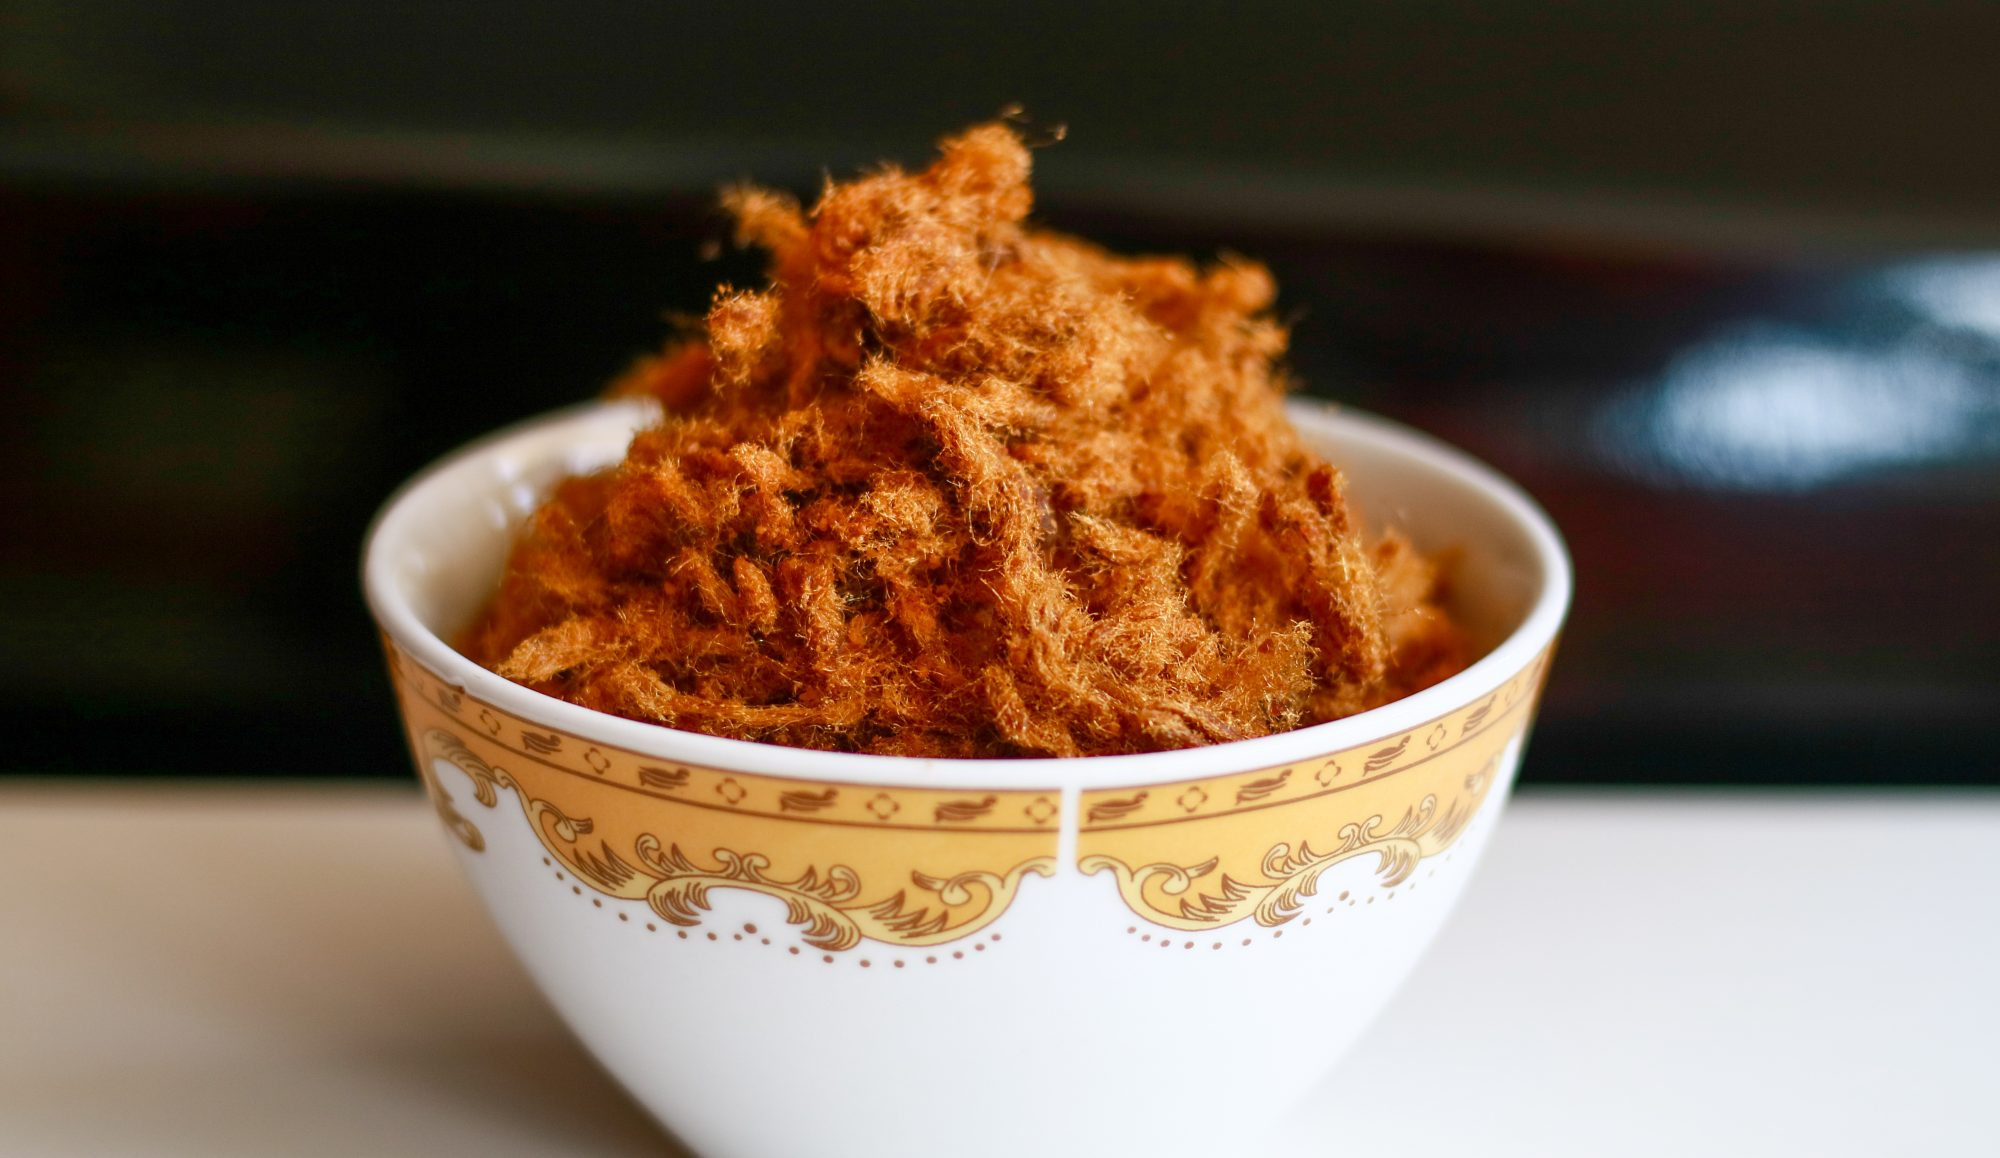 Pork Floss Is the Savory, Crispy Topping We Want to Put On Everything